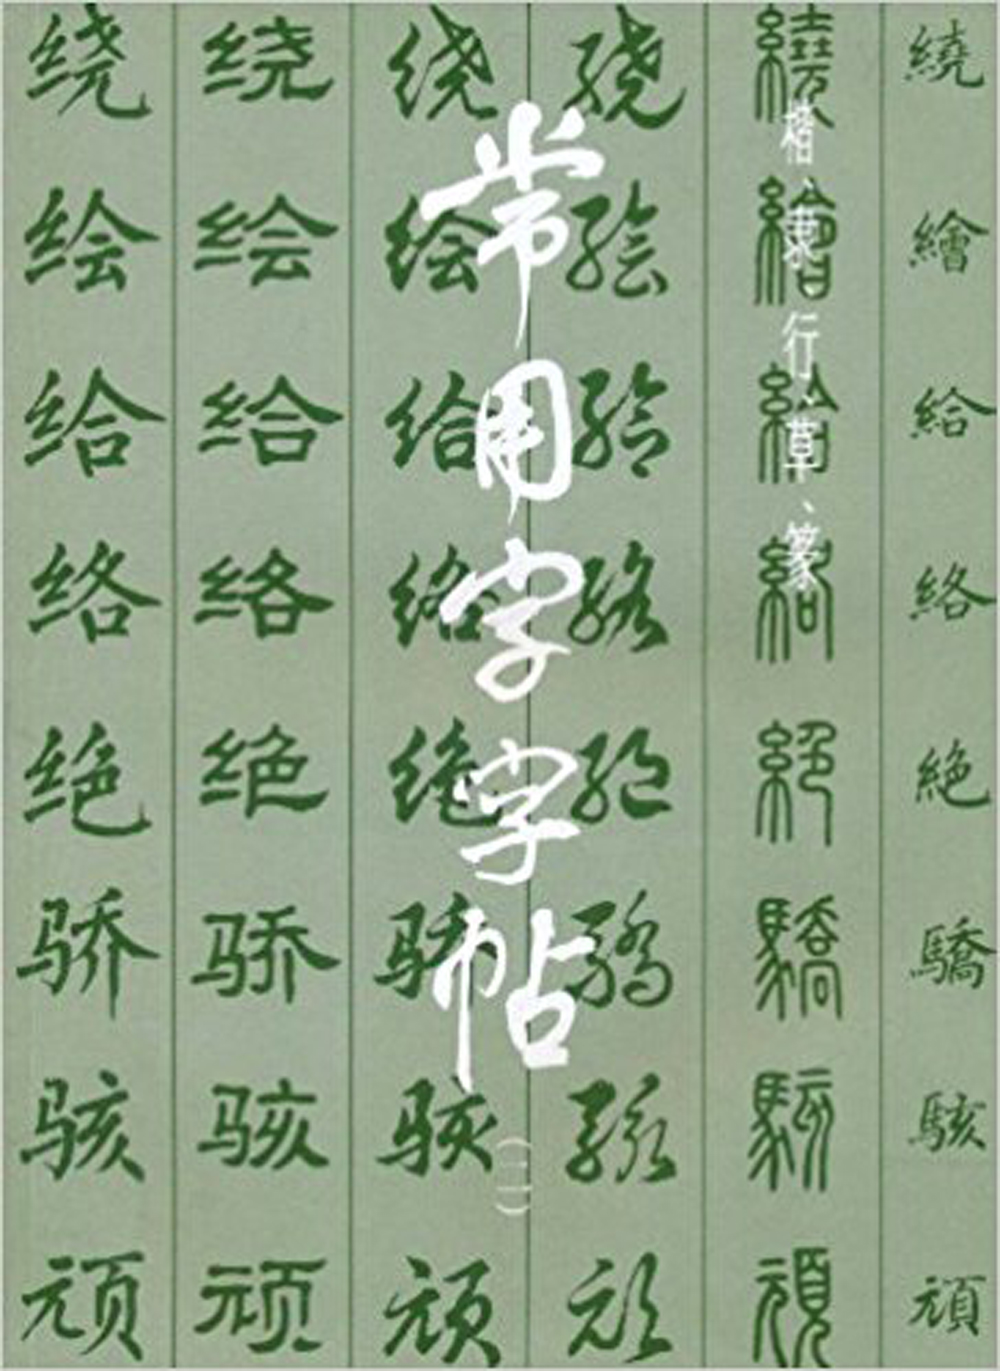 Copybook of Commonly Used Characters - (Two) Chinese Calligraphy Copybook 5000 chinese characters word pen copybook hard pen calligraphy copybook learn writing supplies for china lovers 2017